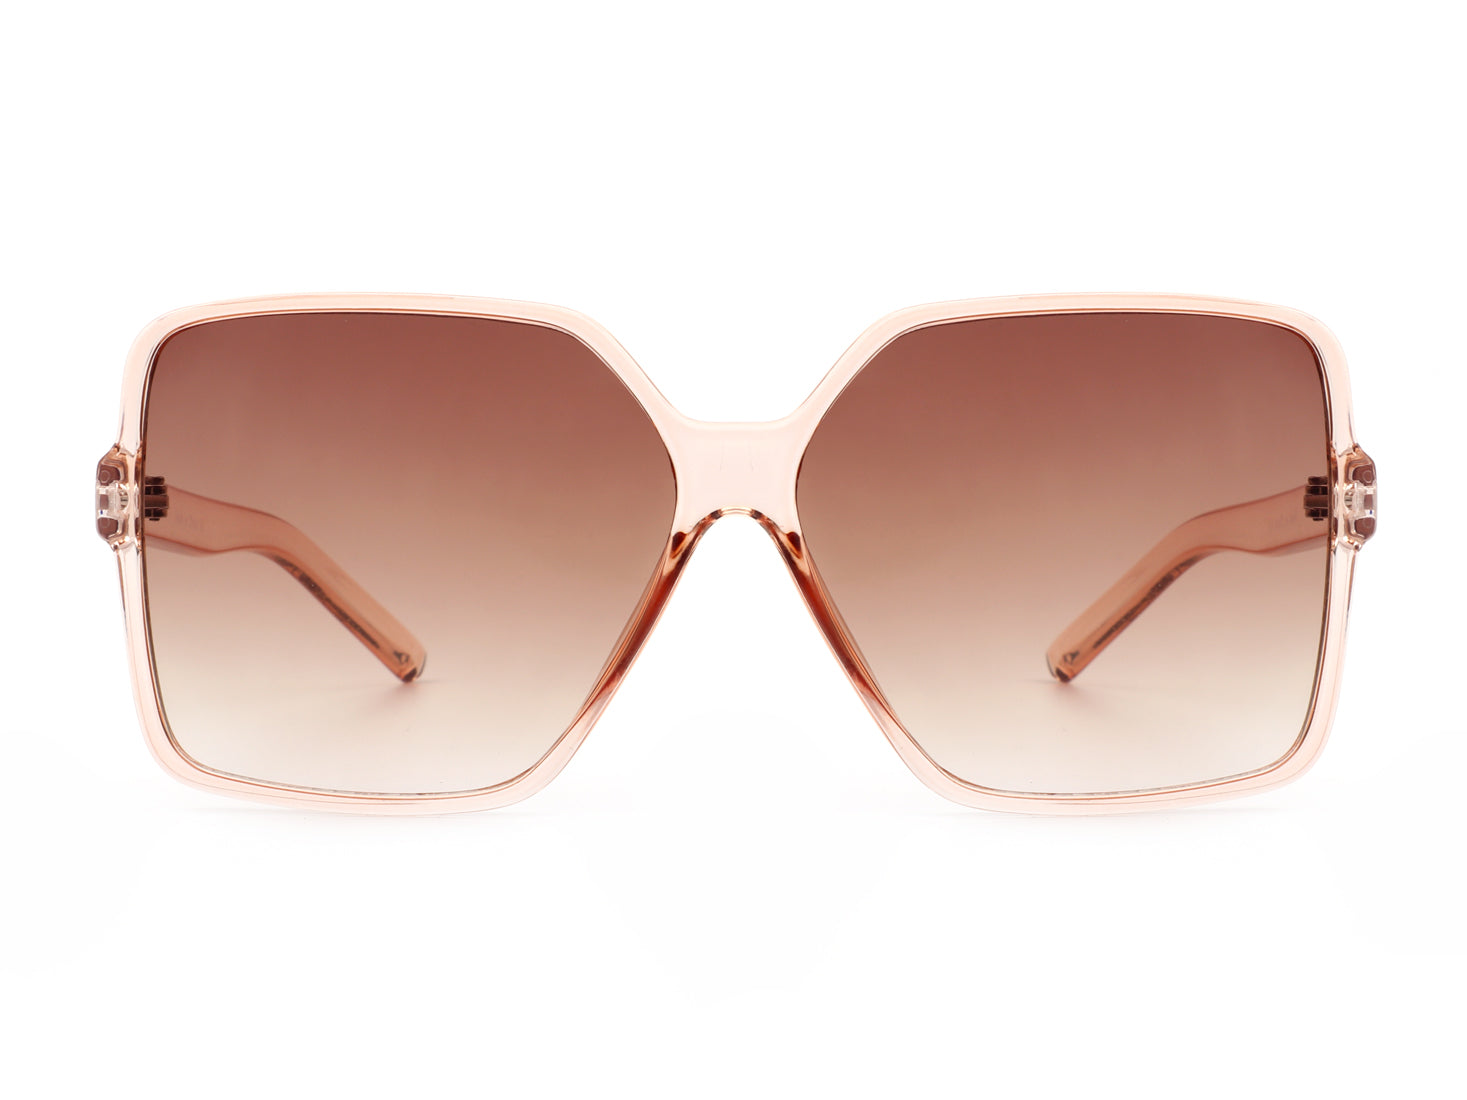 S1154 - Women Oversize Square Fashion Sunglasses